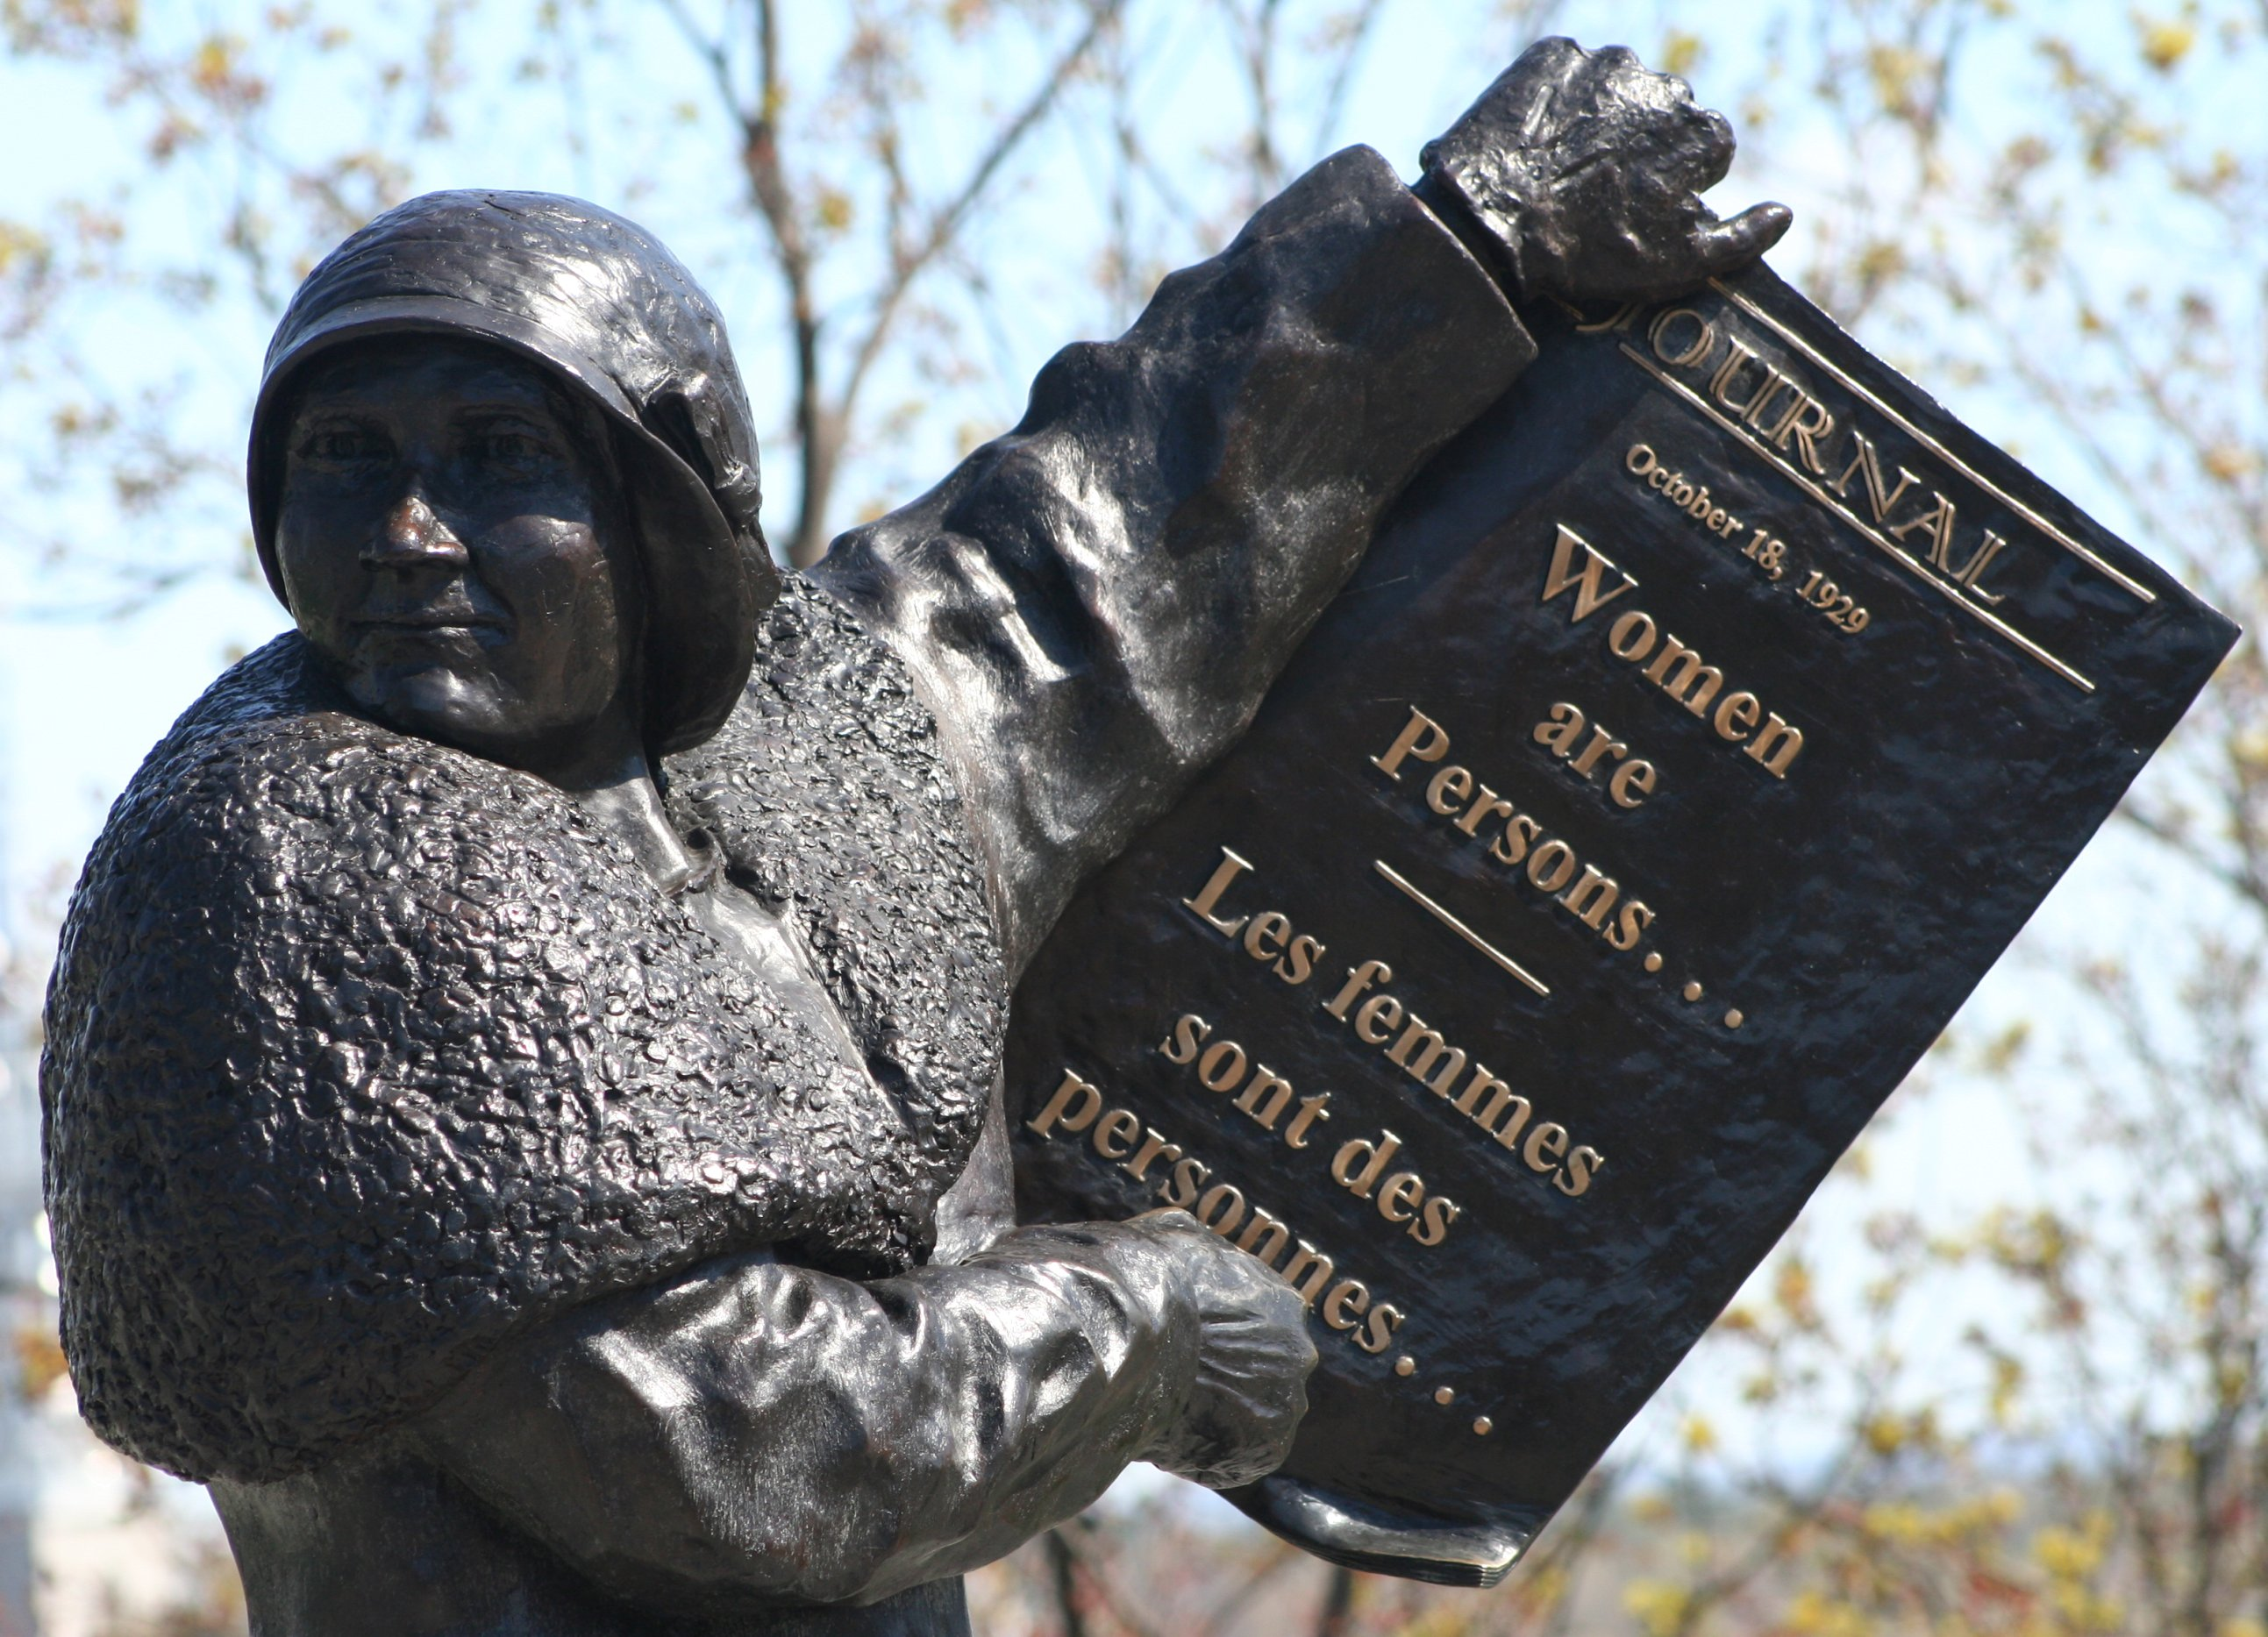 emily murphys significance in canadian history Emily murphy should be celebrated for her accomplishments and how they changed canadian society for the better, not reviled for her shortcomings.